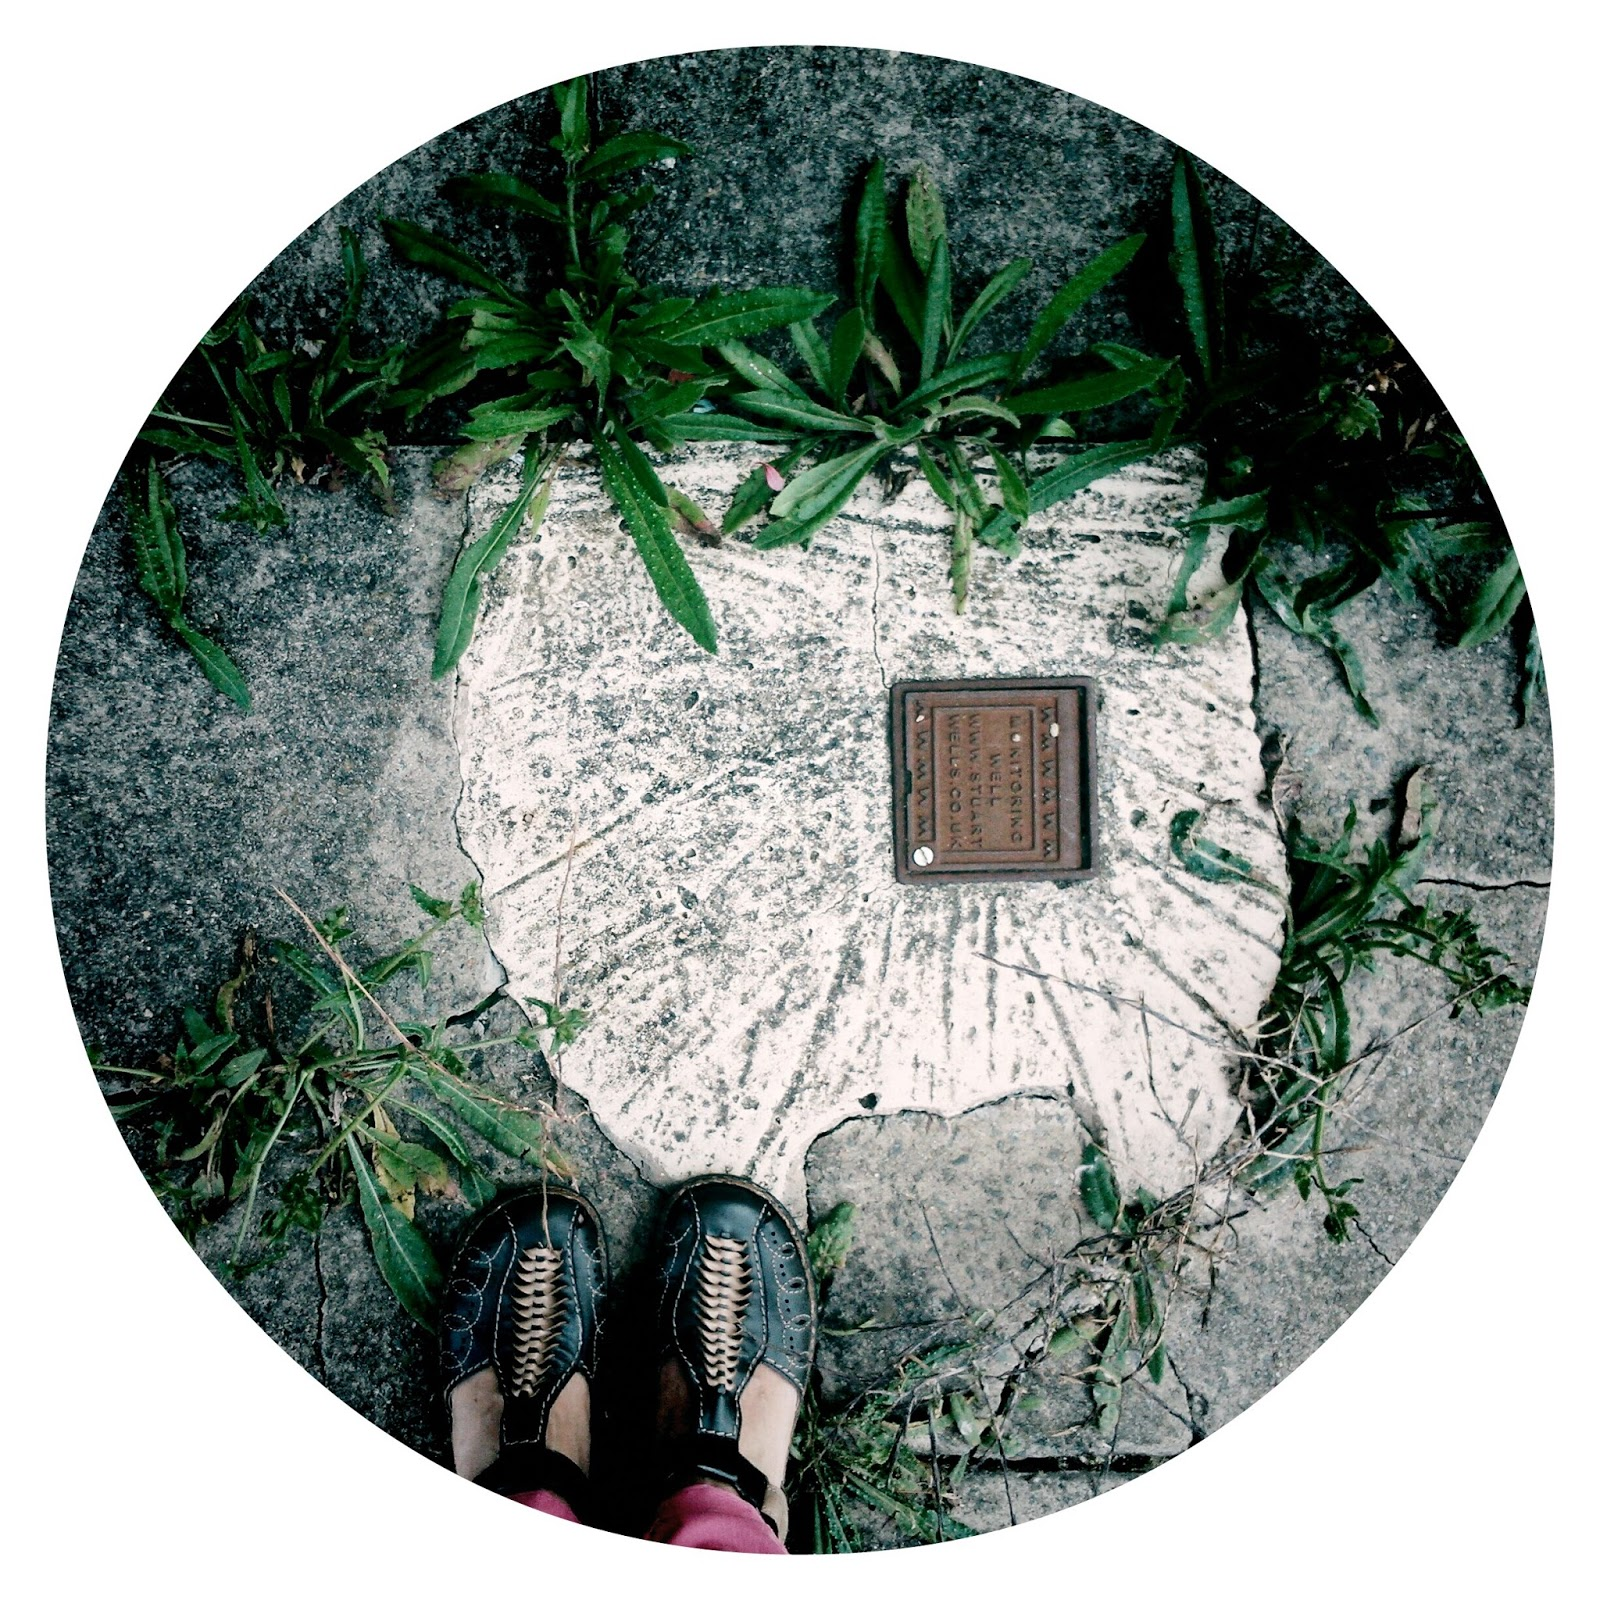 Feet and weeds